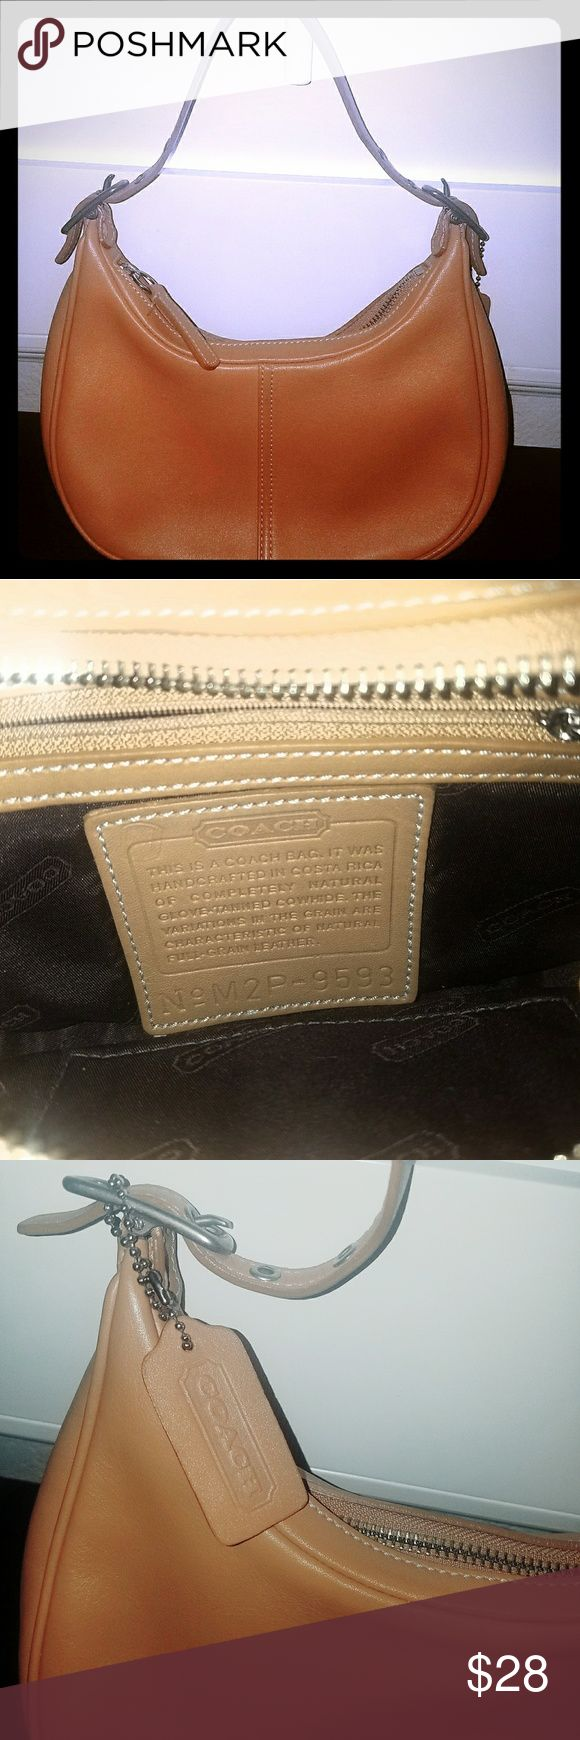 """Genuine Small Coach Leather Handbag - Color is Tan Small Tan Genuine Leather COACH purse. Almost perfect condition approx. 8"""" (L) x 5"""" (H). Kept in smoke free home in a coach duster bag. Although it is several years old, I rarely used it. Great for nights on the town and day trips/outings when you can get away with having the bare necessities in your purse. I purchase all of my handbags from either Nordstrom or the actual designer store. It's really too cute, classy and a steal for $28 as I…"""